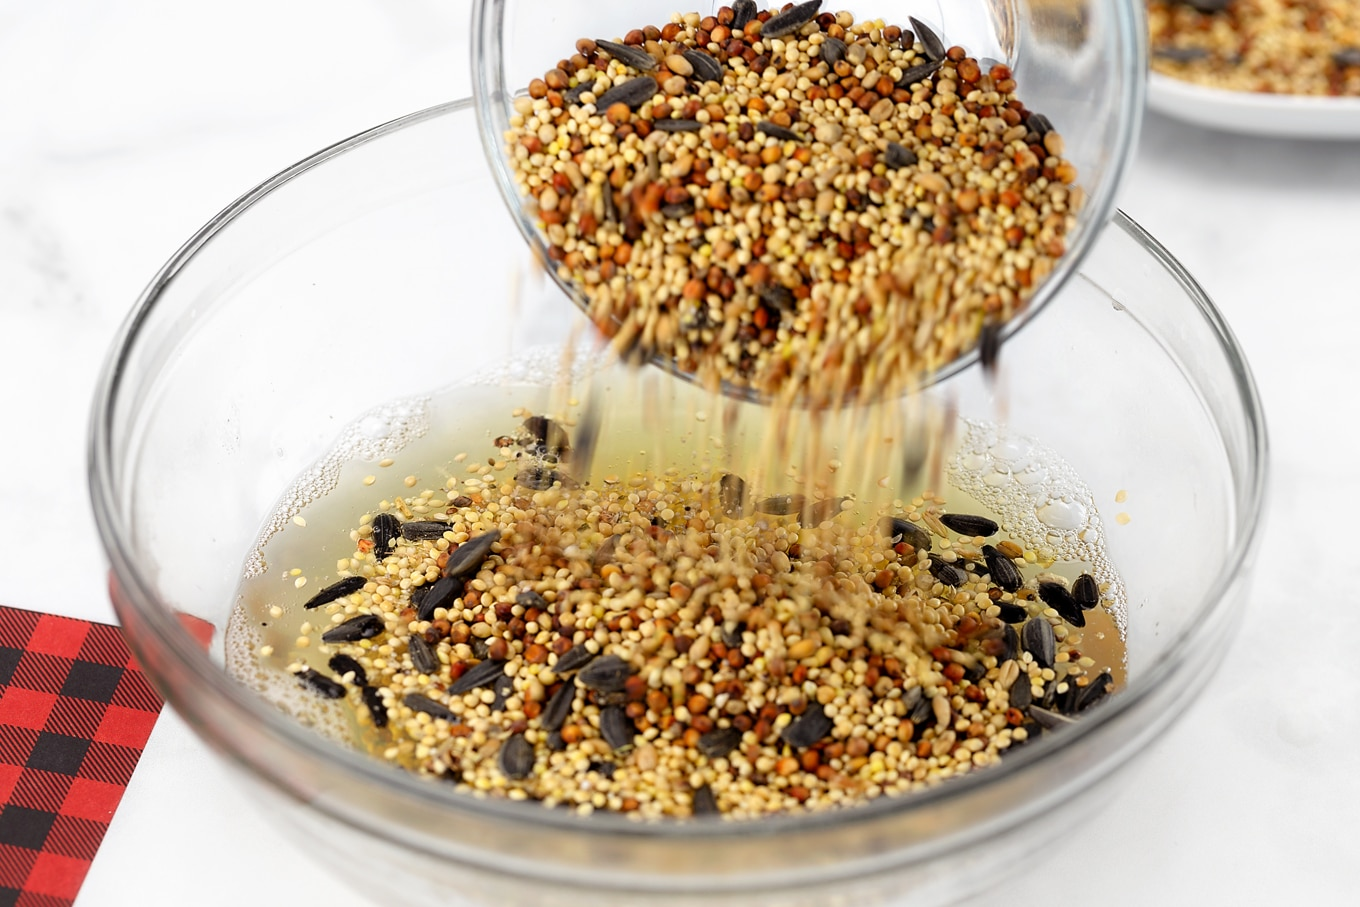 Mixing Birdseed with Gelatin and Water